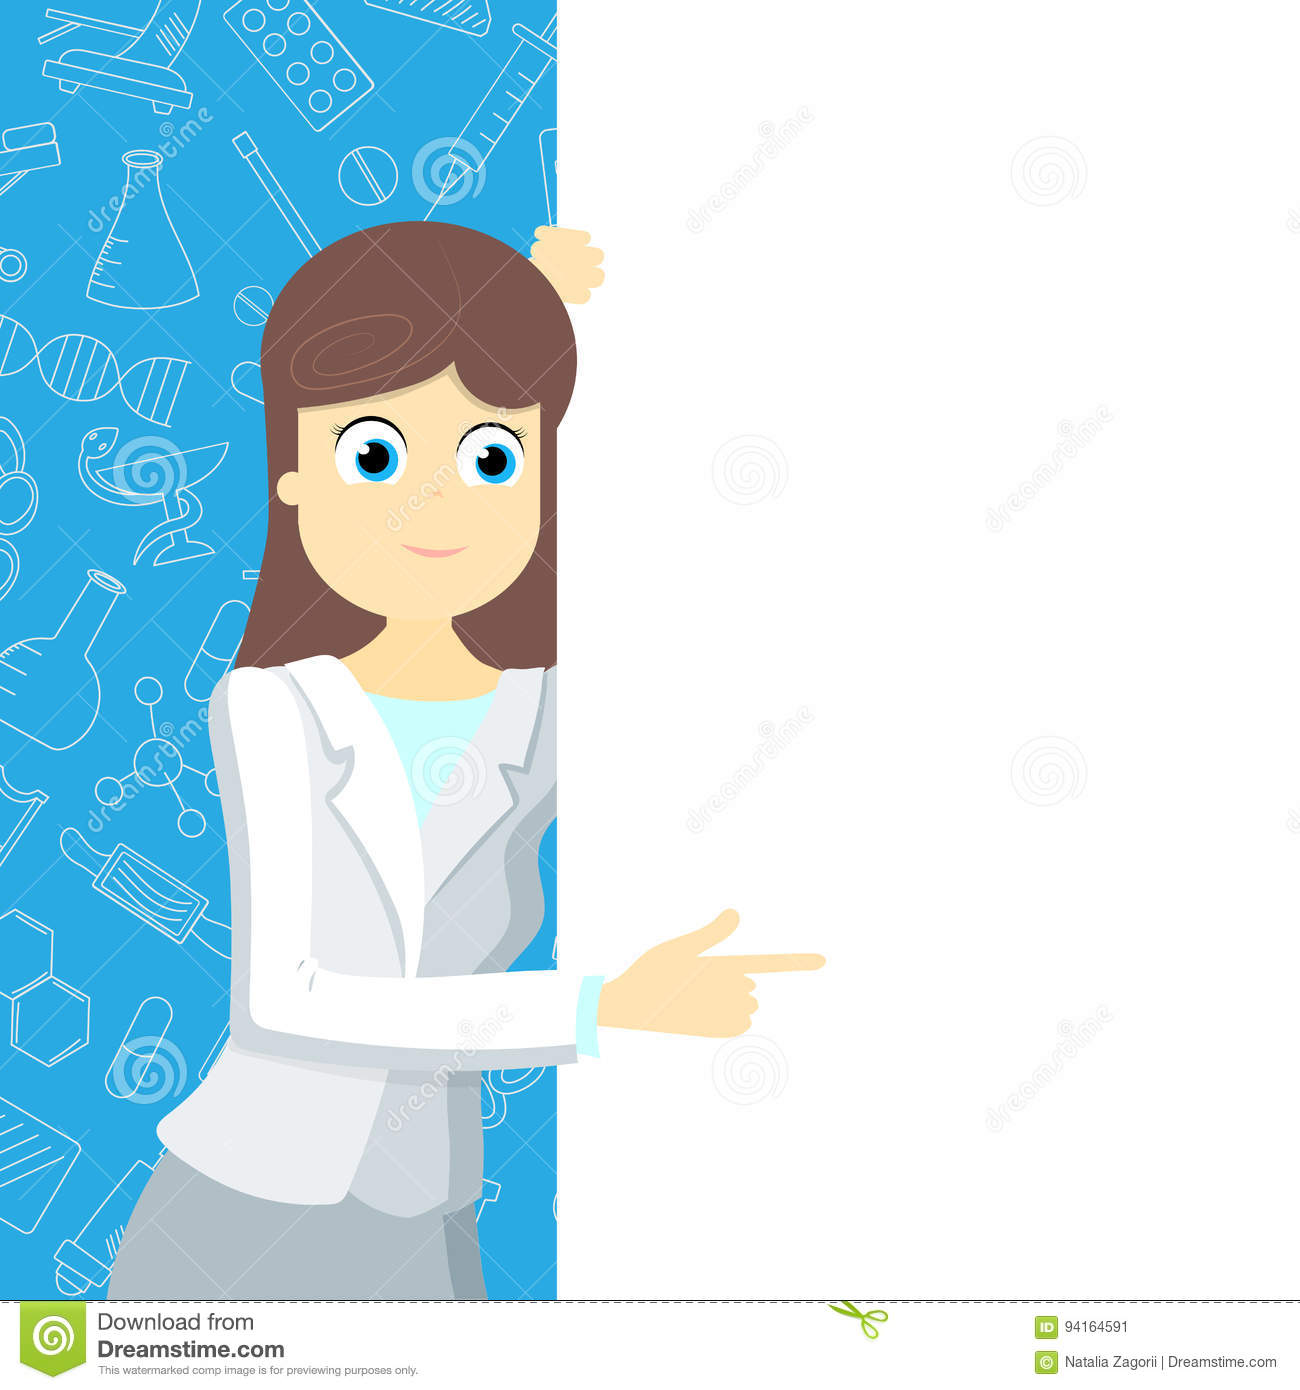 Girl in medical clothing points to a blank banner on a blue background with icons on a theme medicine